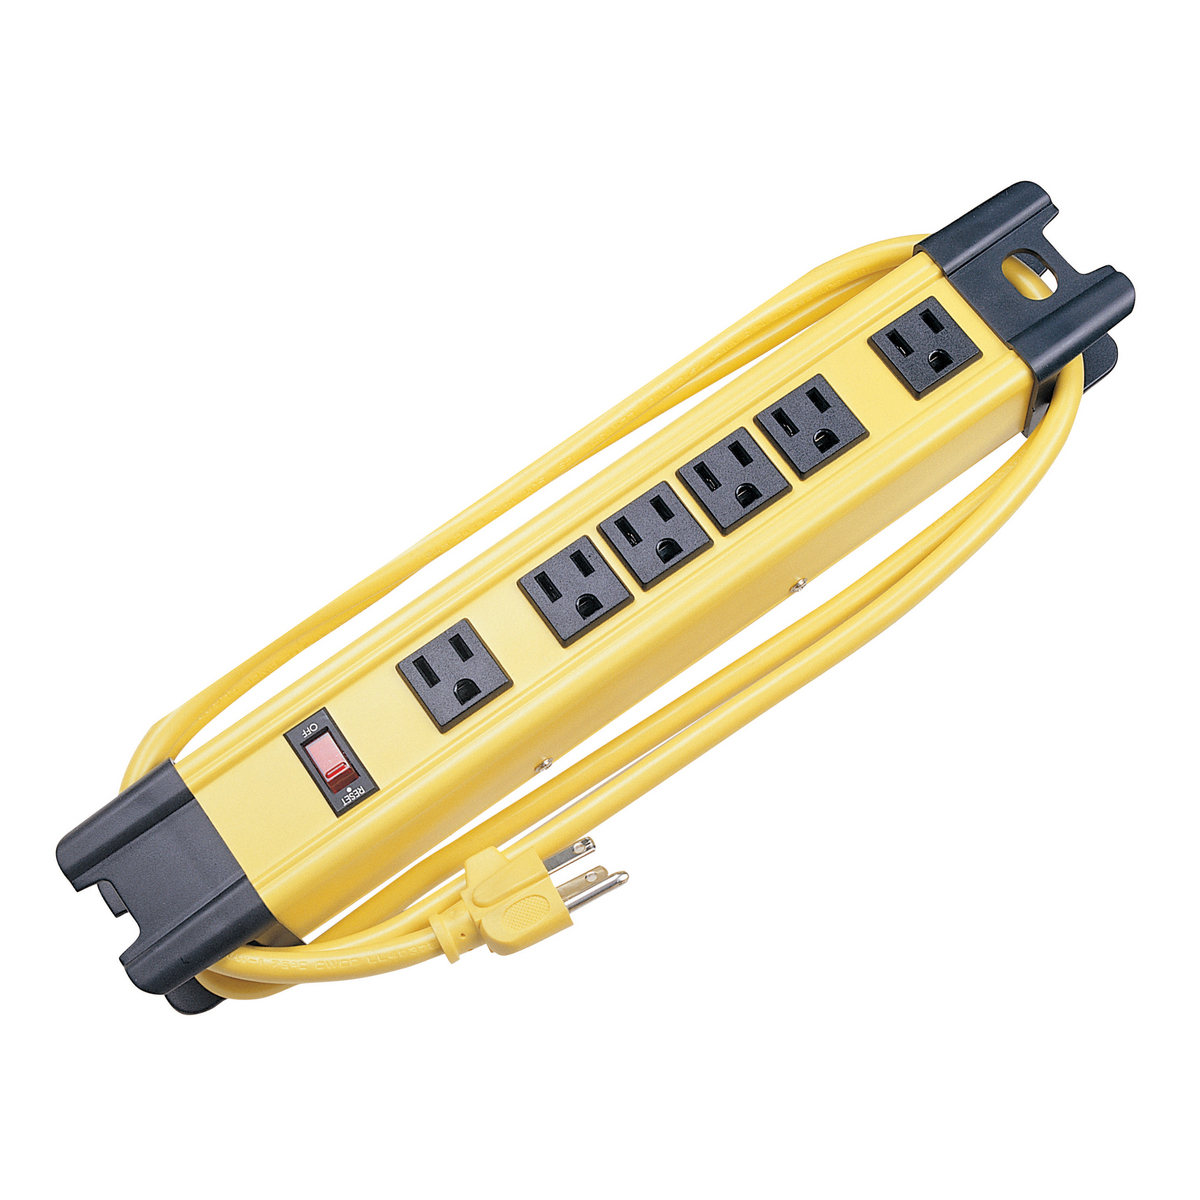 Hubbell HBL6PS350YL 6 Foot 6 Outlet Yellow Surge Protection Plug Strip